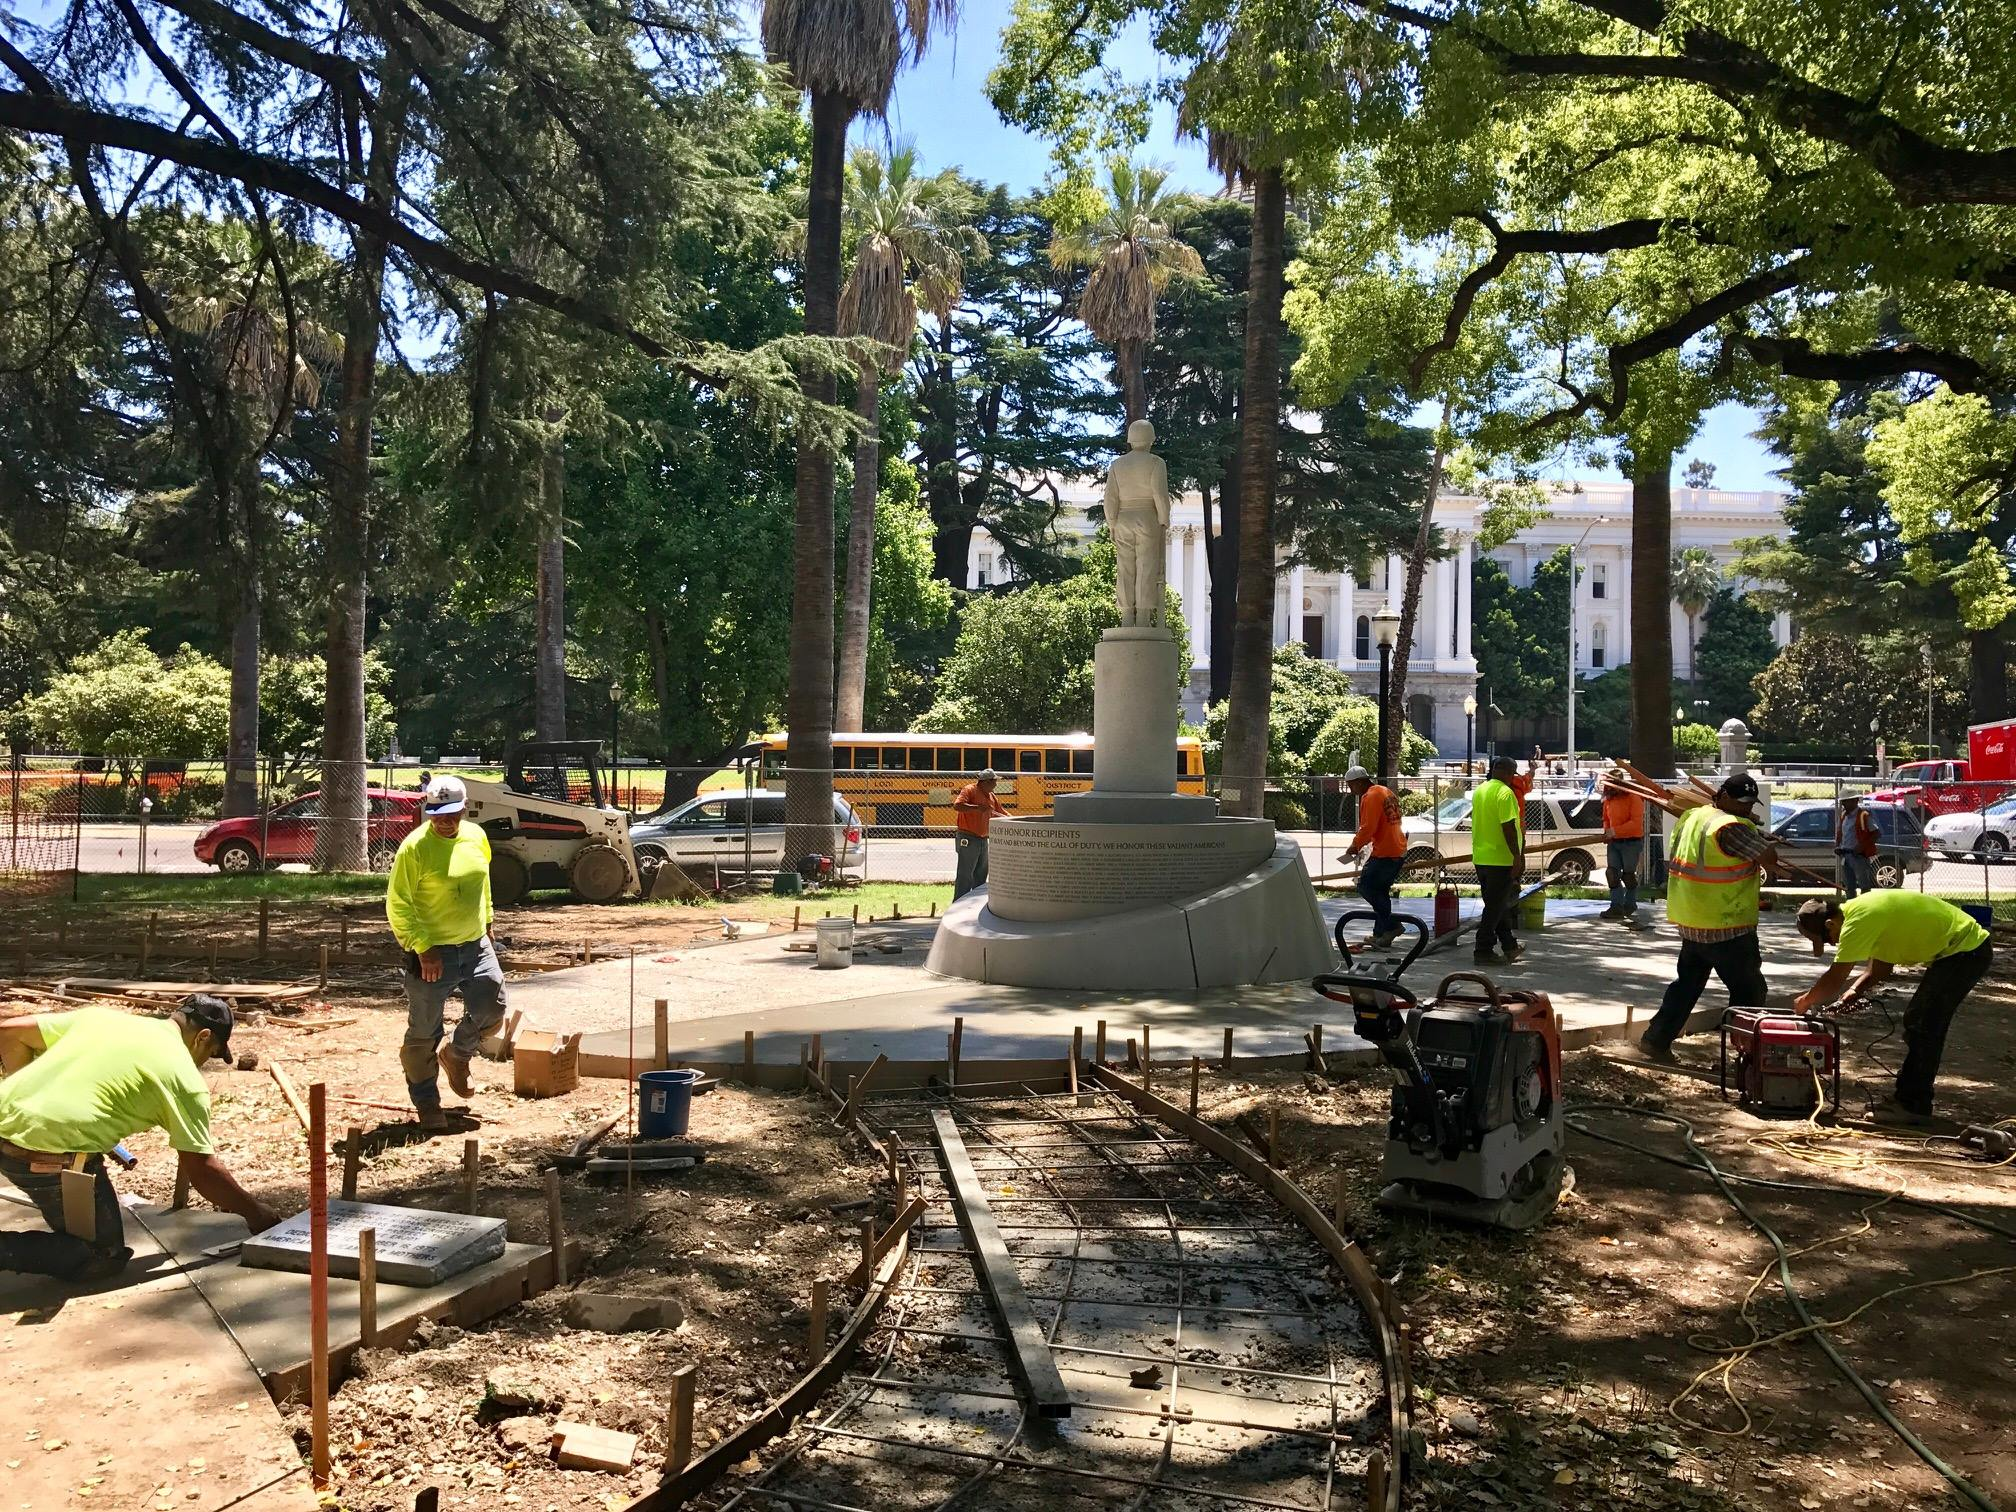 Workers landscape around the new plaza after the statue's reinstallation (official Facebook page).